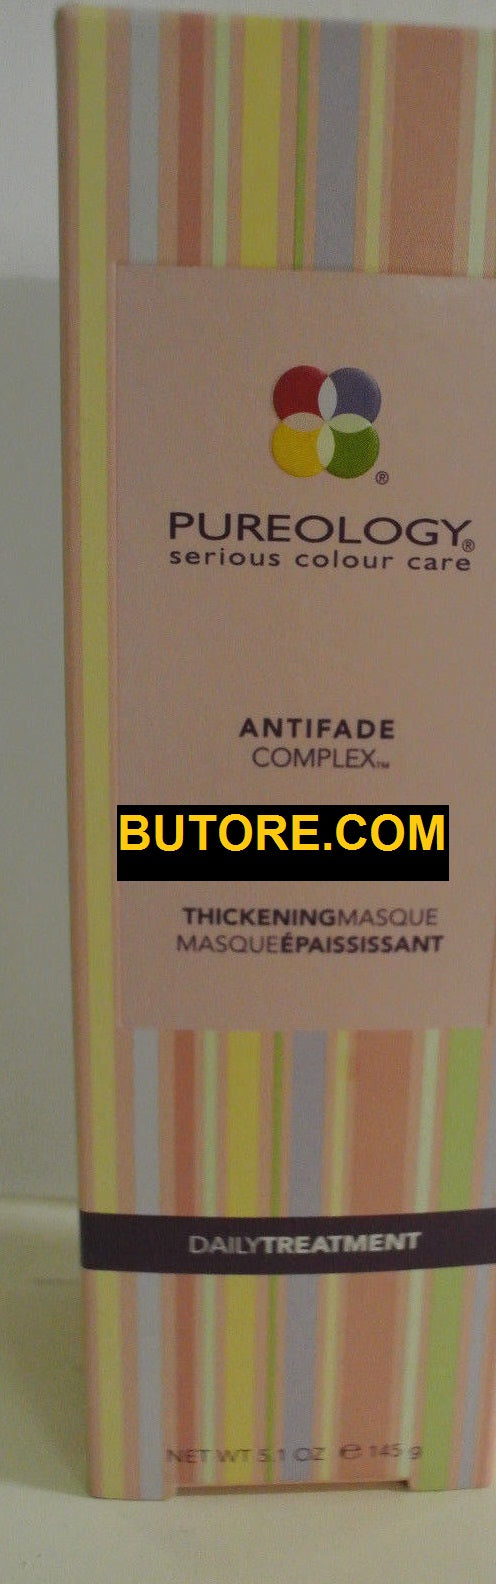 PUREOLOGY Serious Colour Care Antifade Complex Thickening Masque 5.1oz